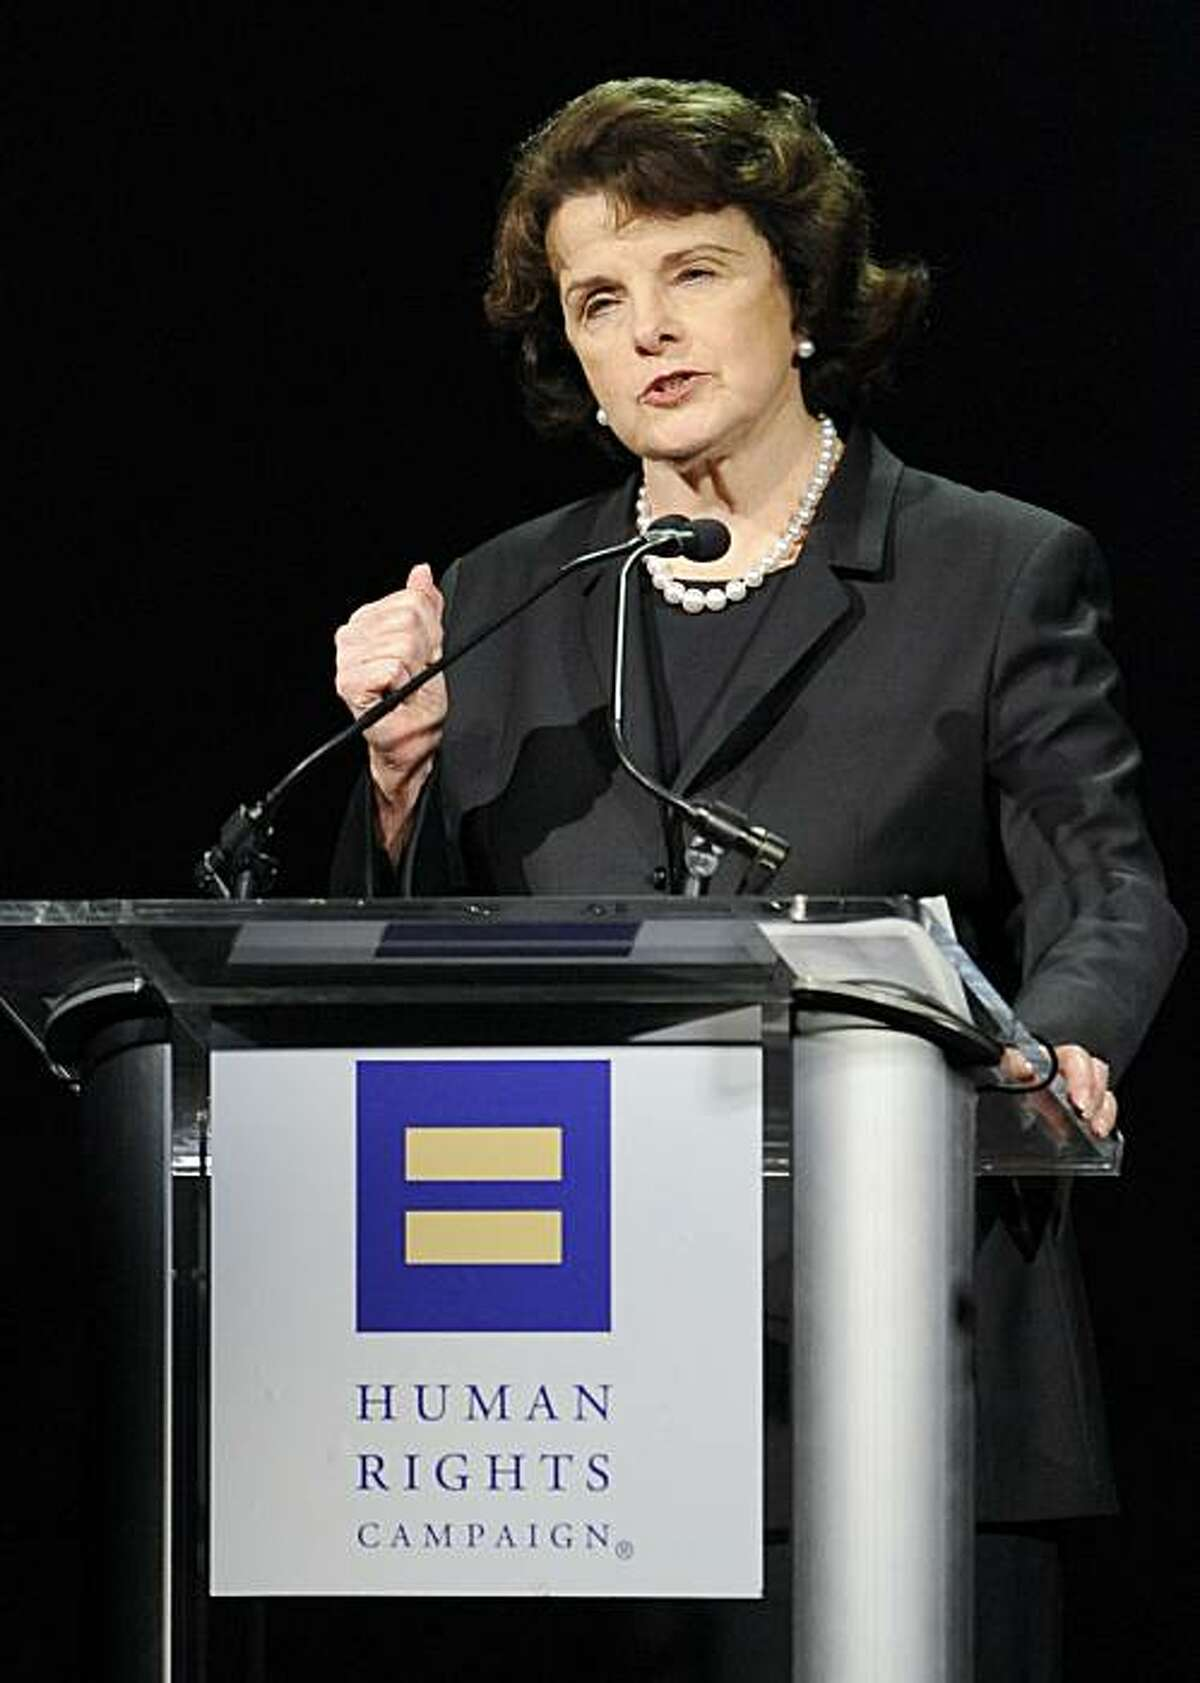 Senator Dianne Feinstein (D-CA) delivers the keynote speech at the Human Rights Campaign's 2009 Los Angeles Gala and Hero Awards, Saturday, March 14, 2009, in Los Angeles. (AP Photo/Gus Ruelas)